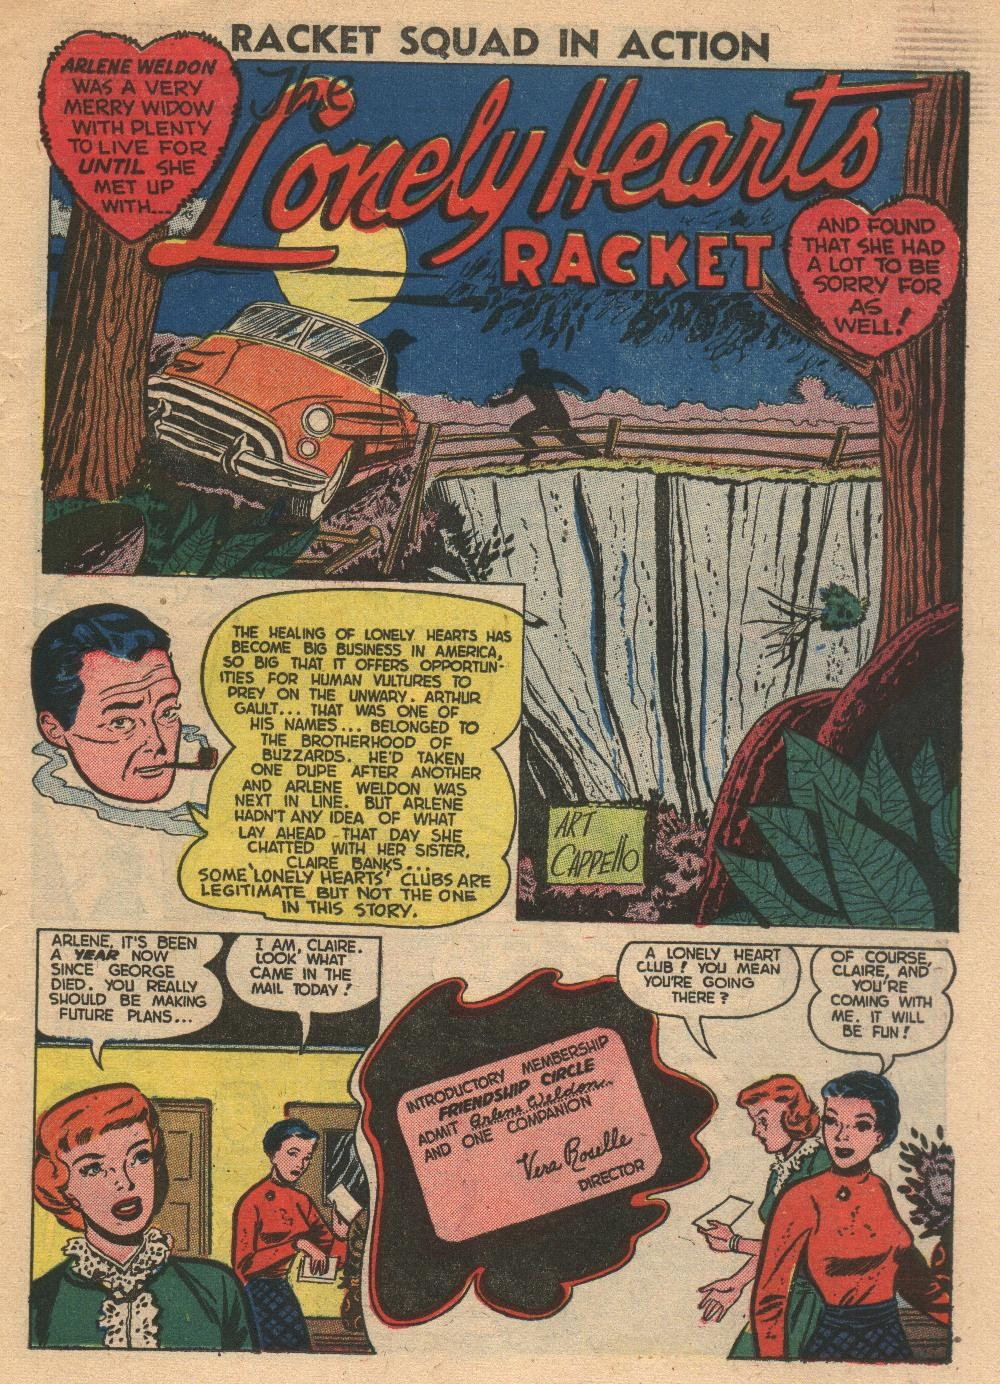 Read online Racket Squad in Action comic -  Issue #2 - 19